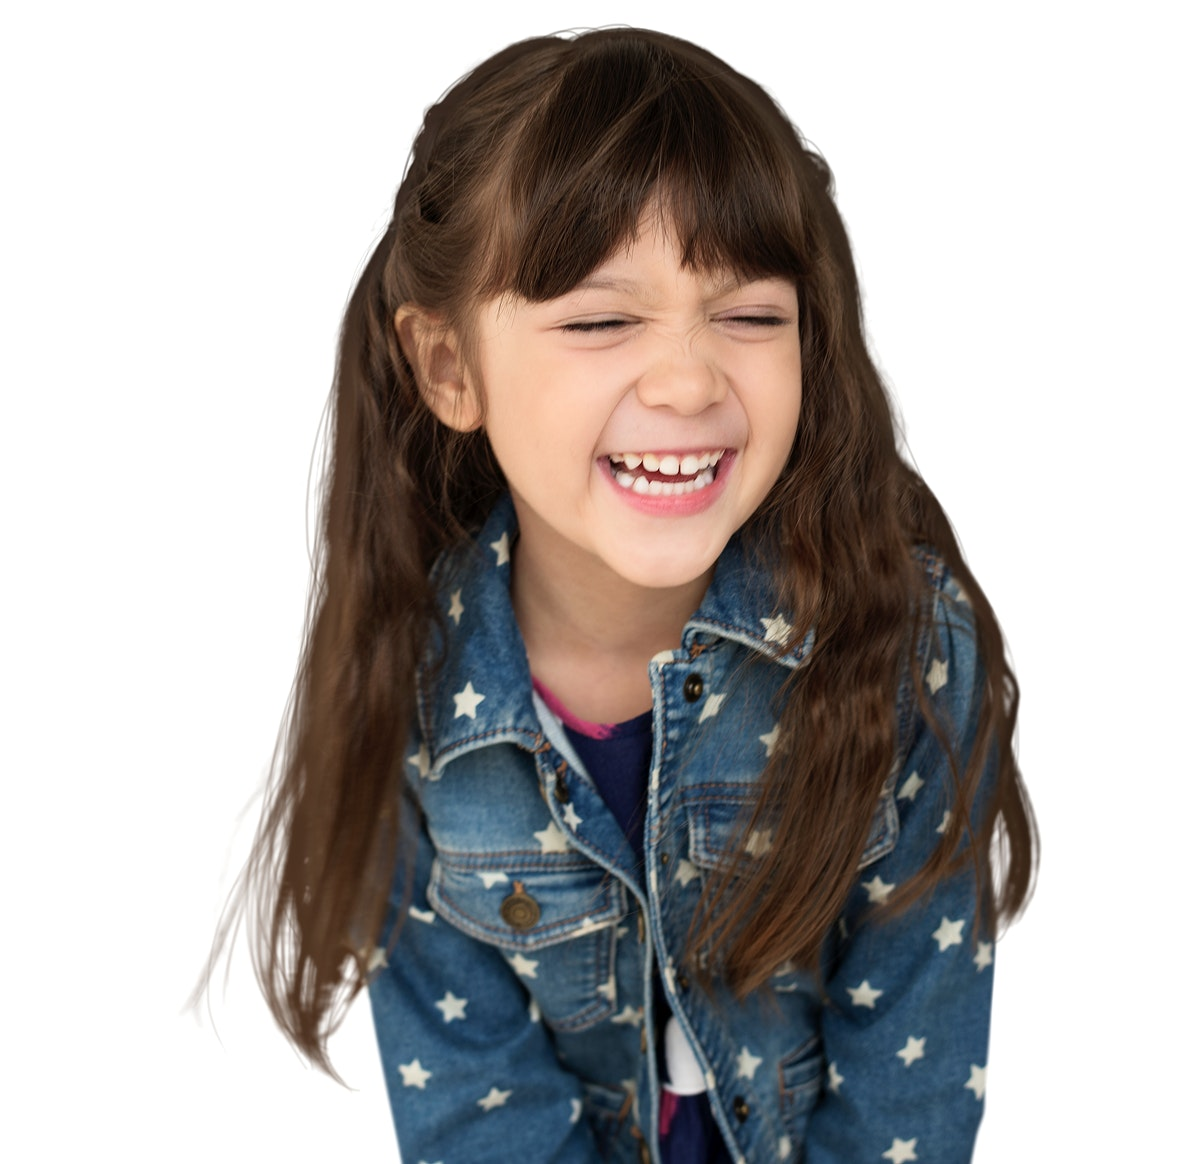 Young Girl Smile Laugh Happiness